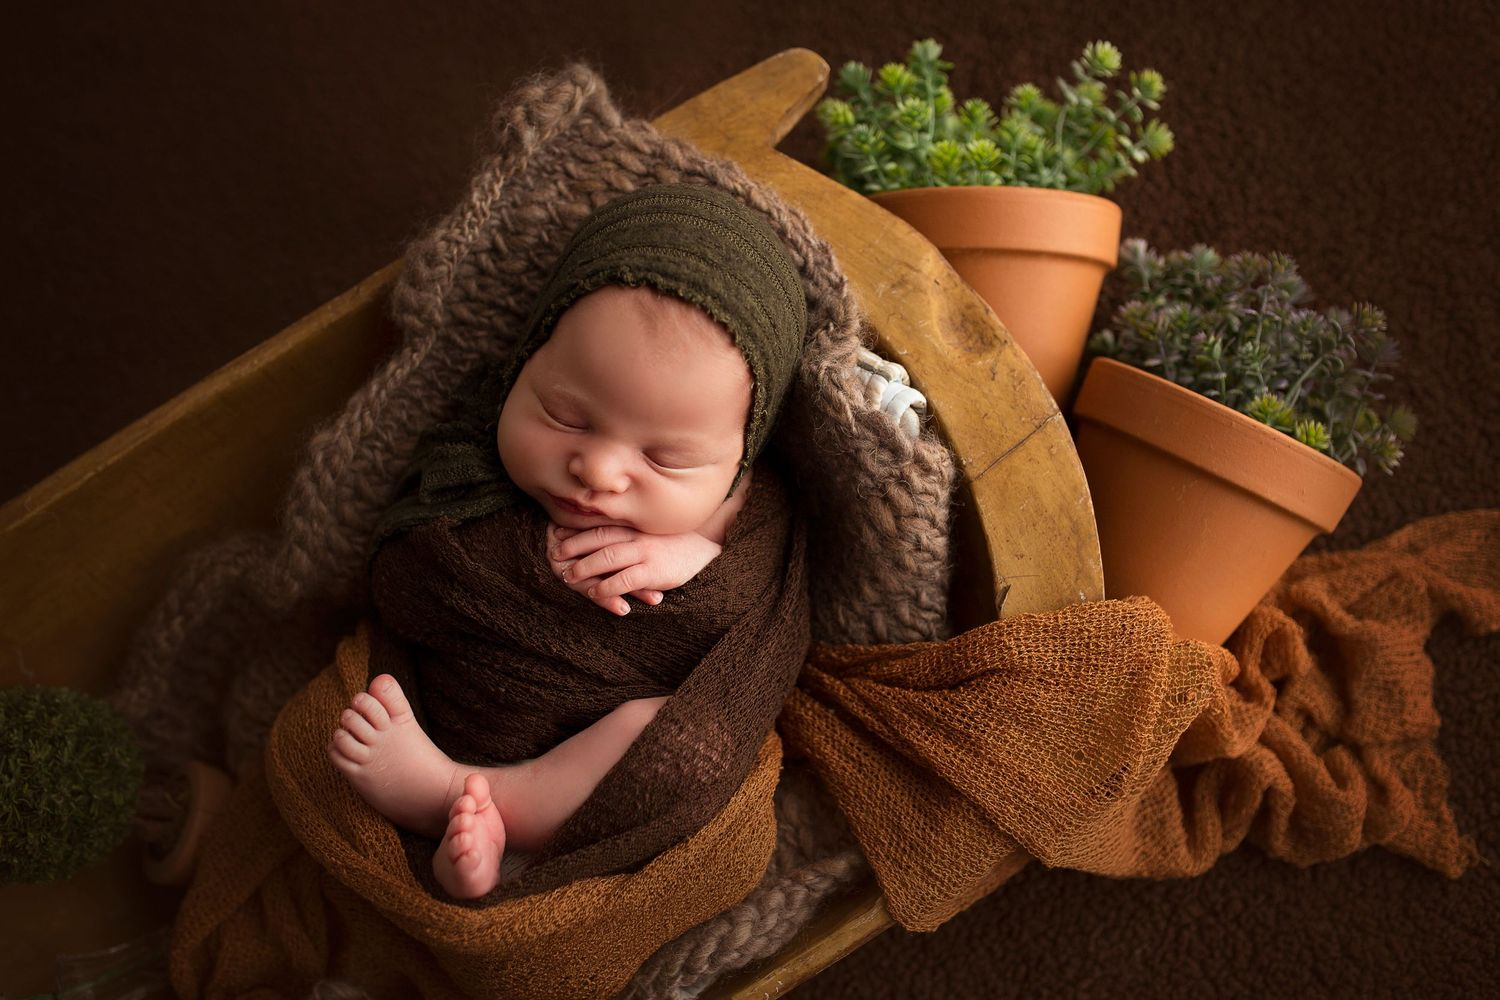 baby boy photoshoot wrapped in brown blanket in trench bowl